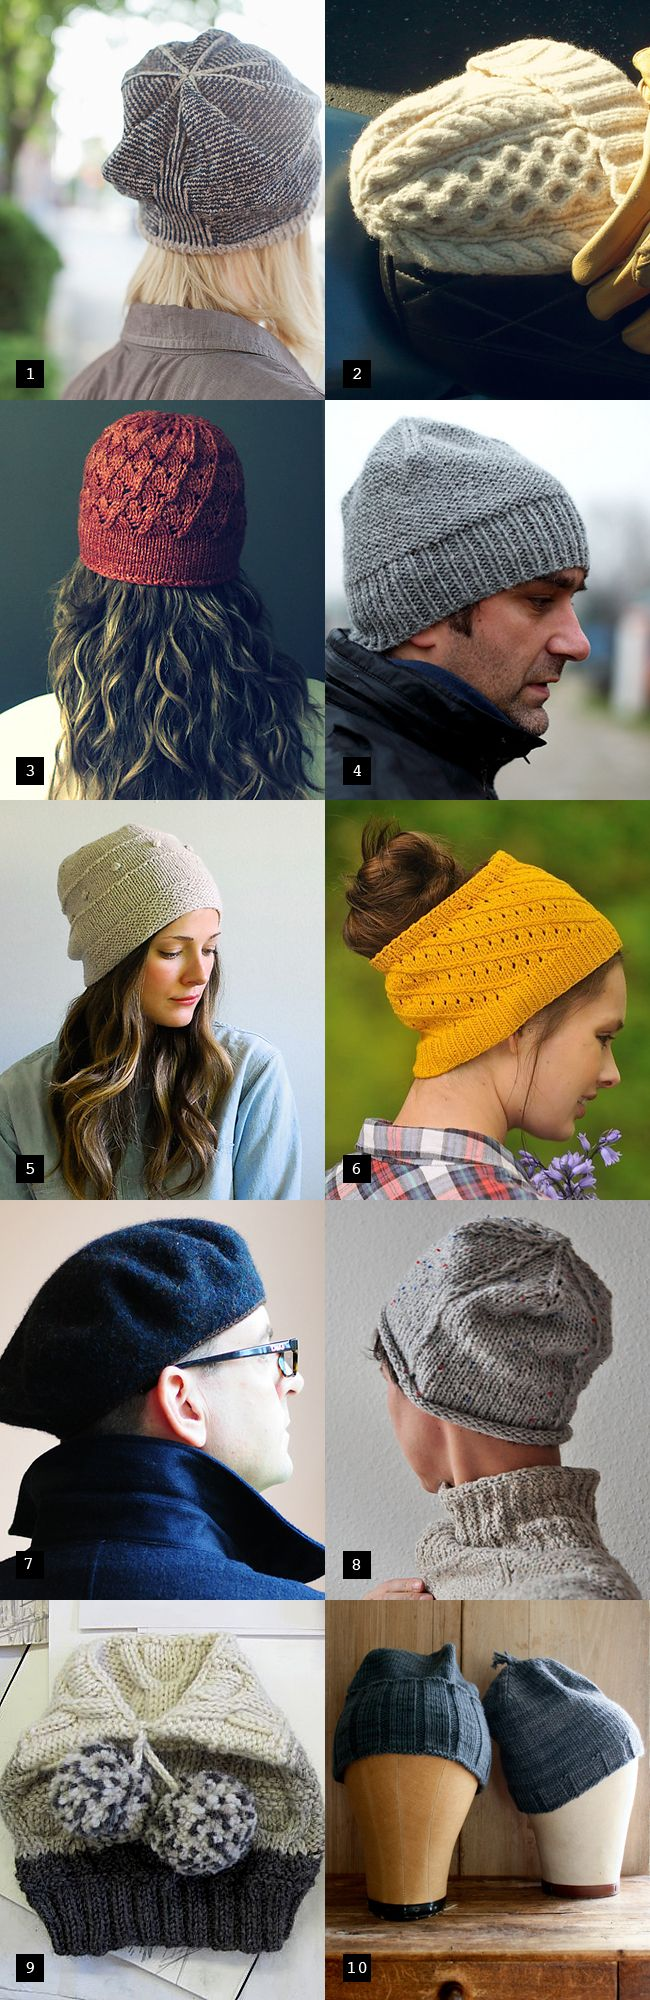 holiday hat patterns for every personality type